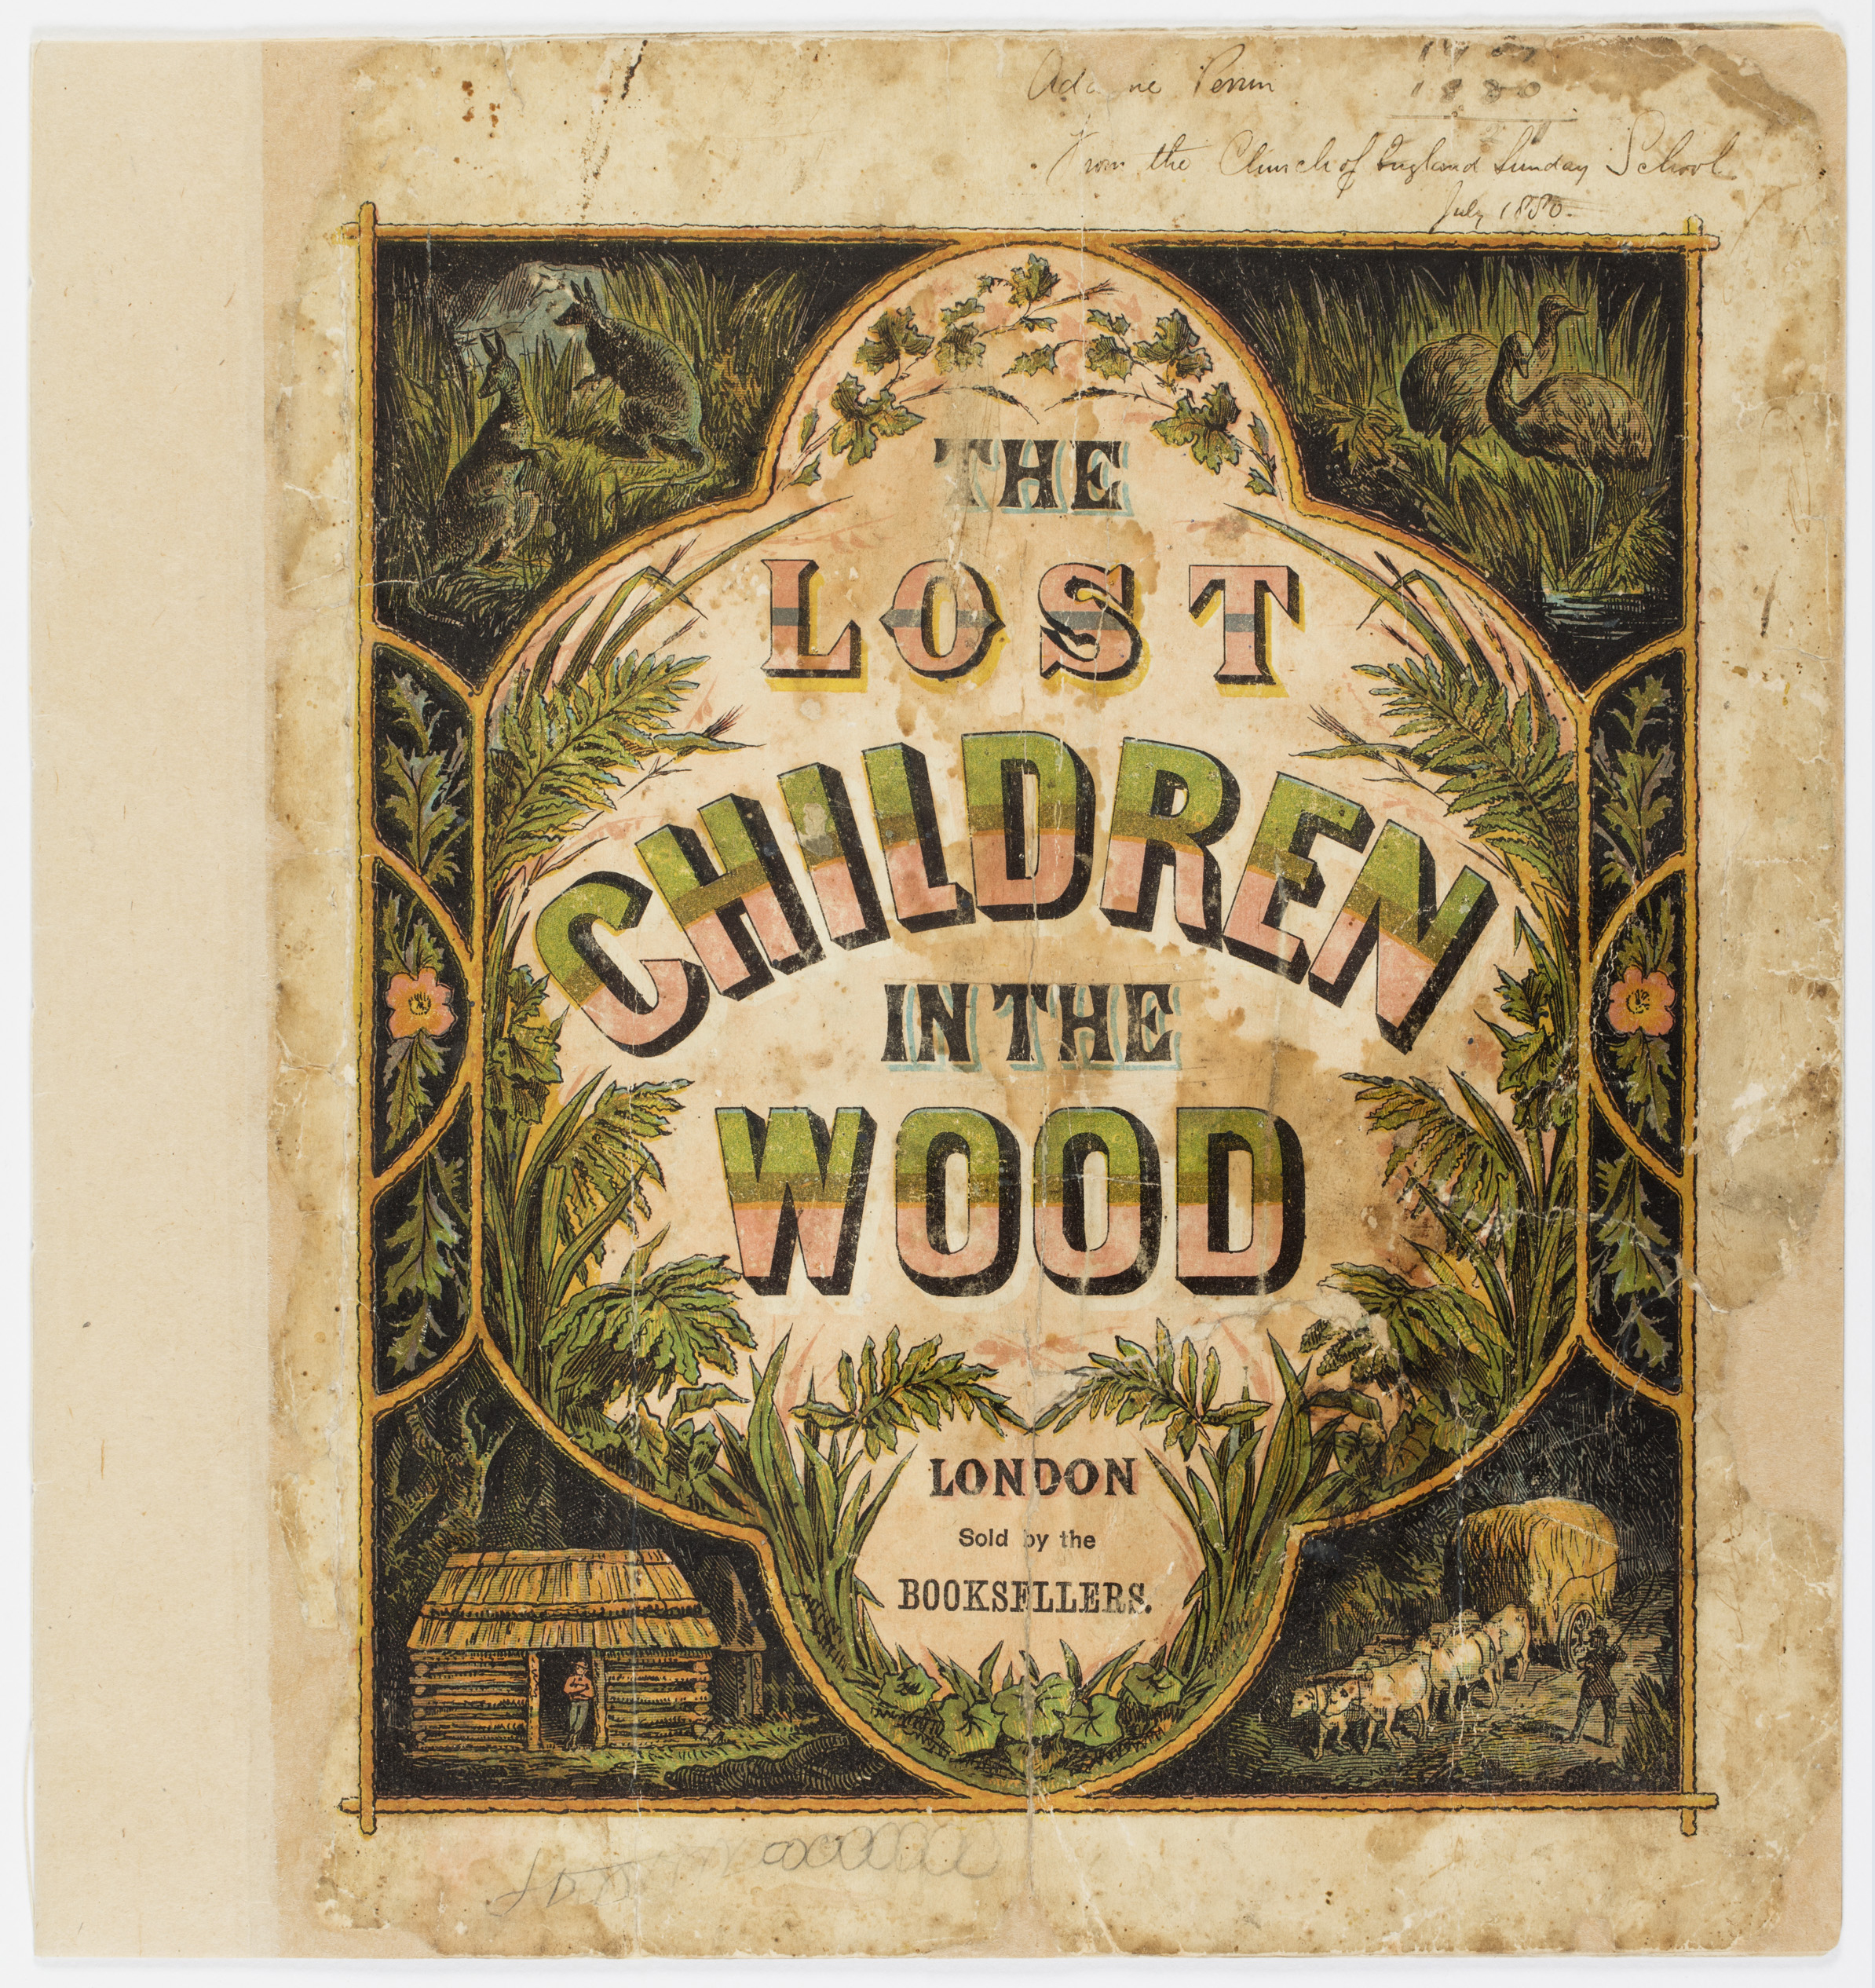 Cover of the Lost children in the Wood book